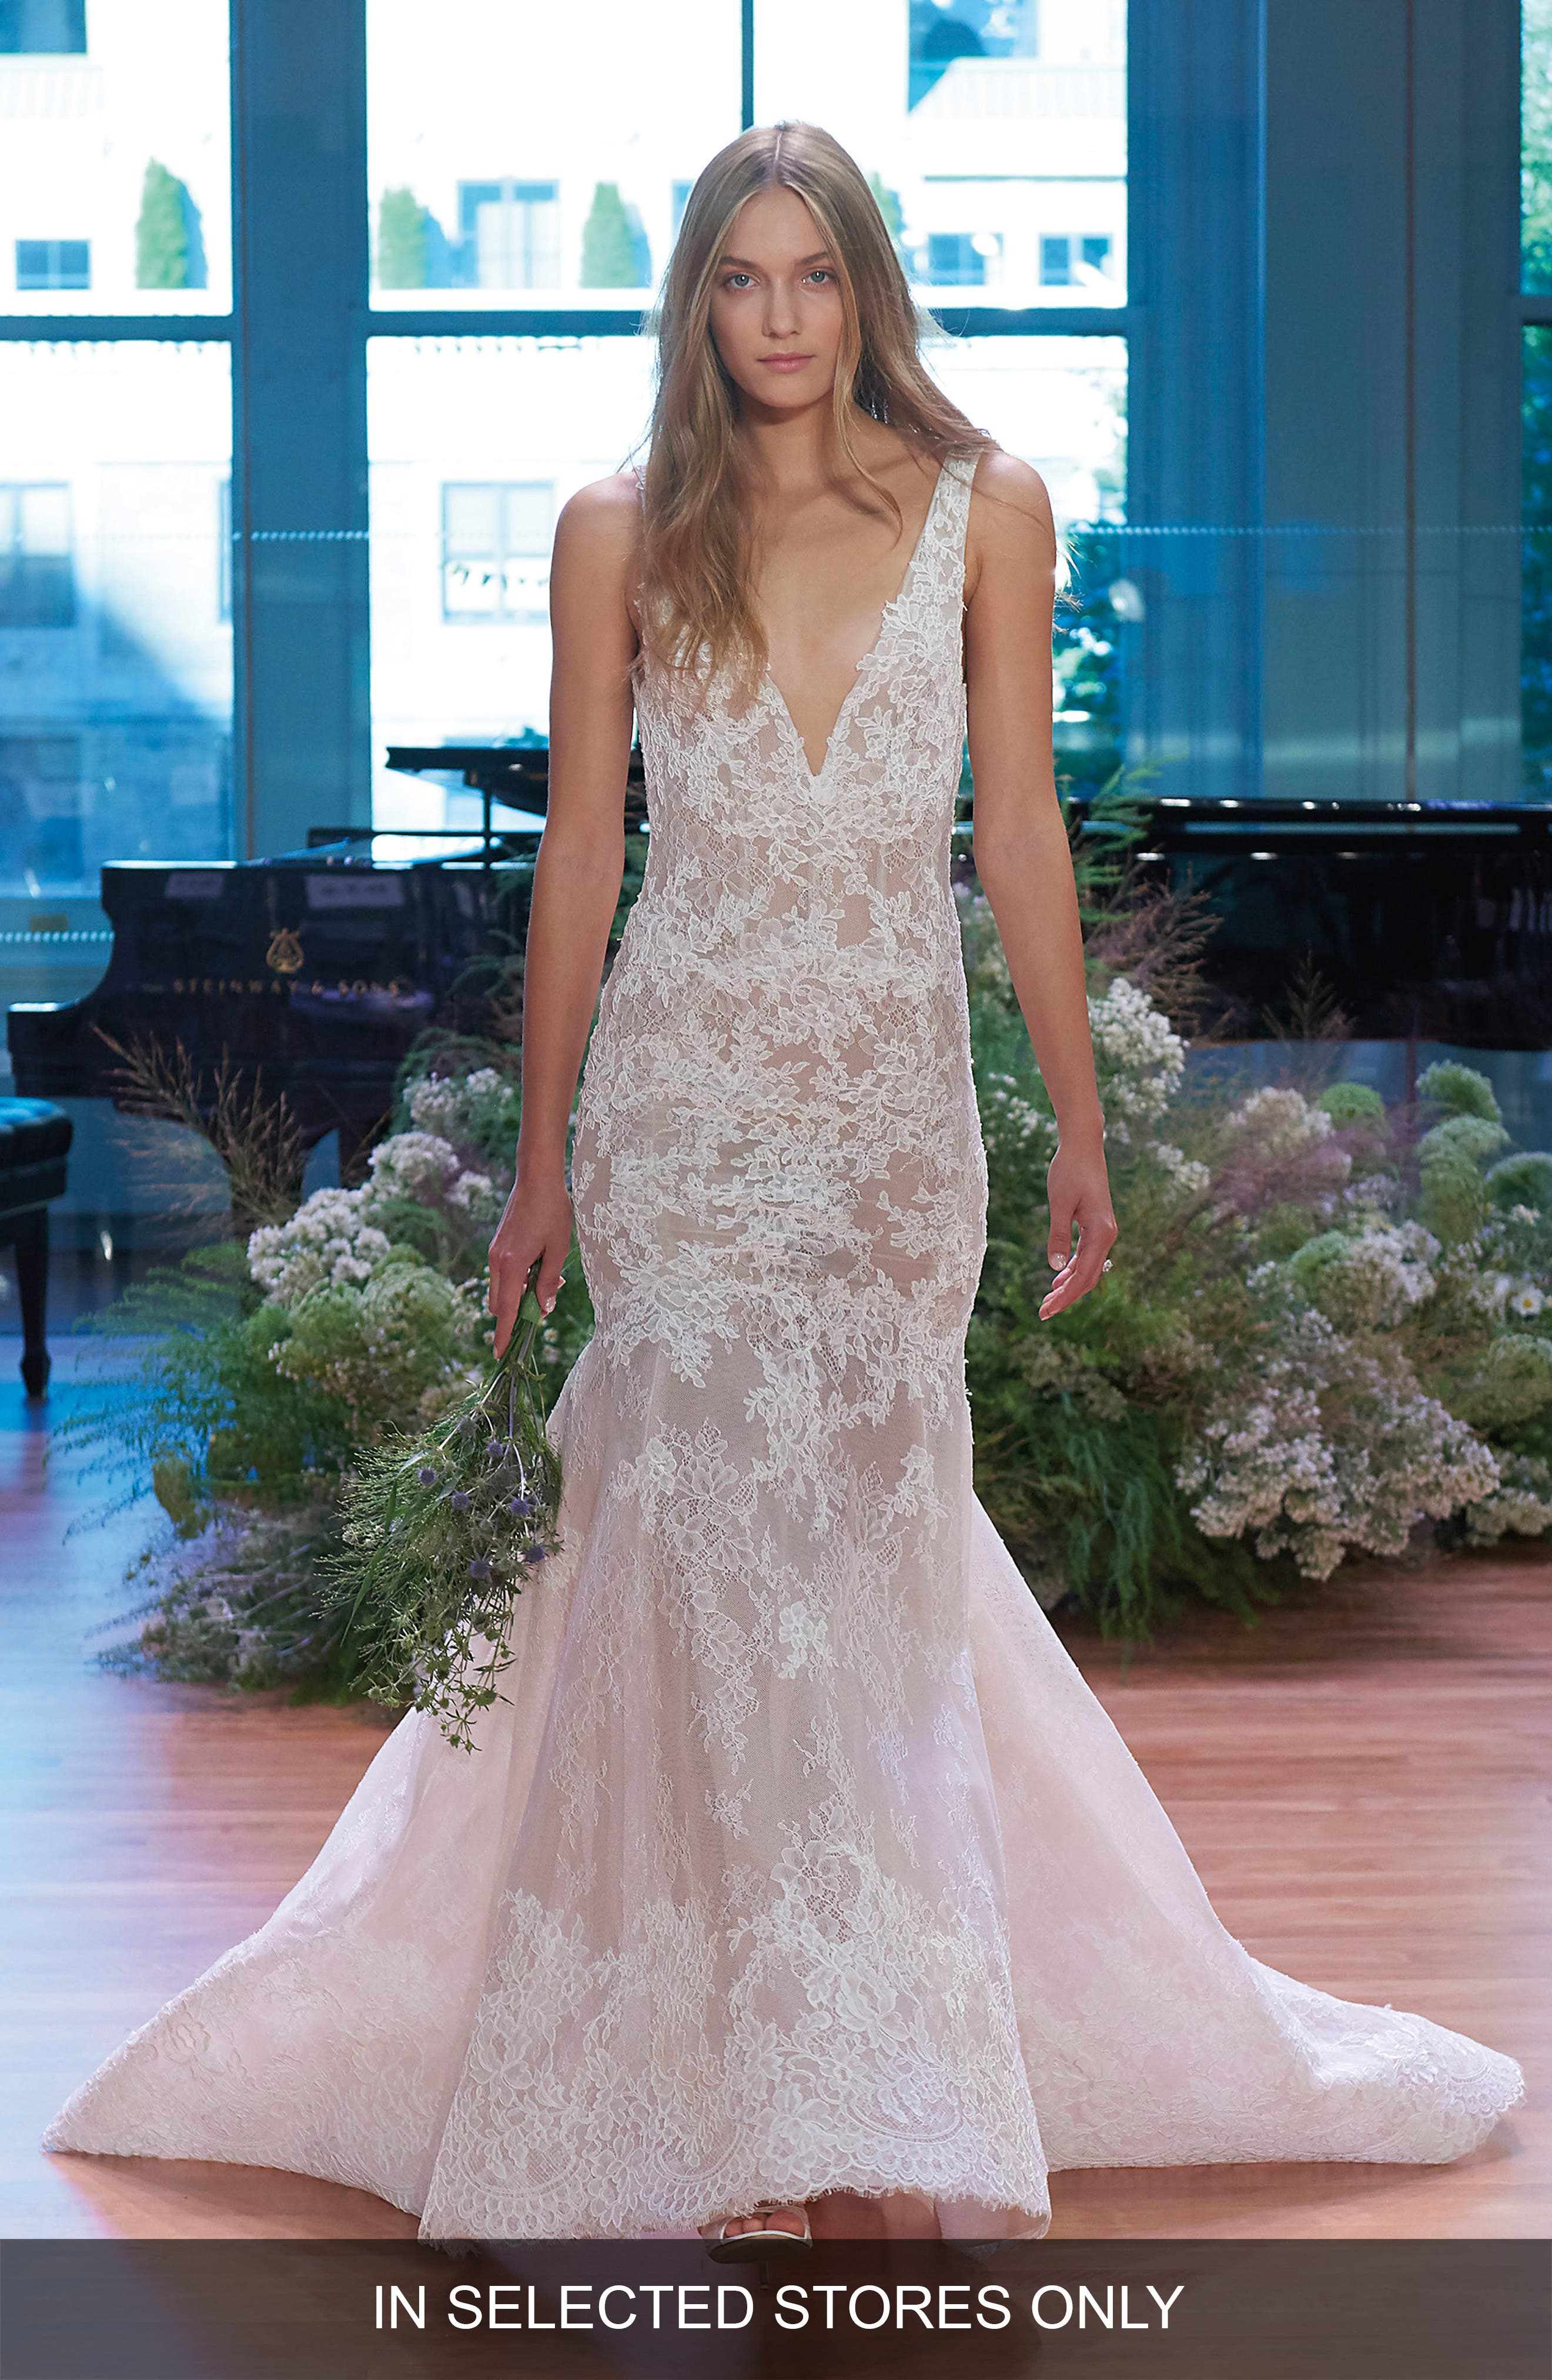 Monique Lhuillier Keaton Plunge Lace Trumpet Gown (In Selected Stores Only)